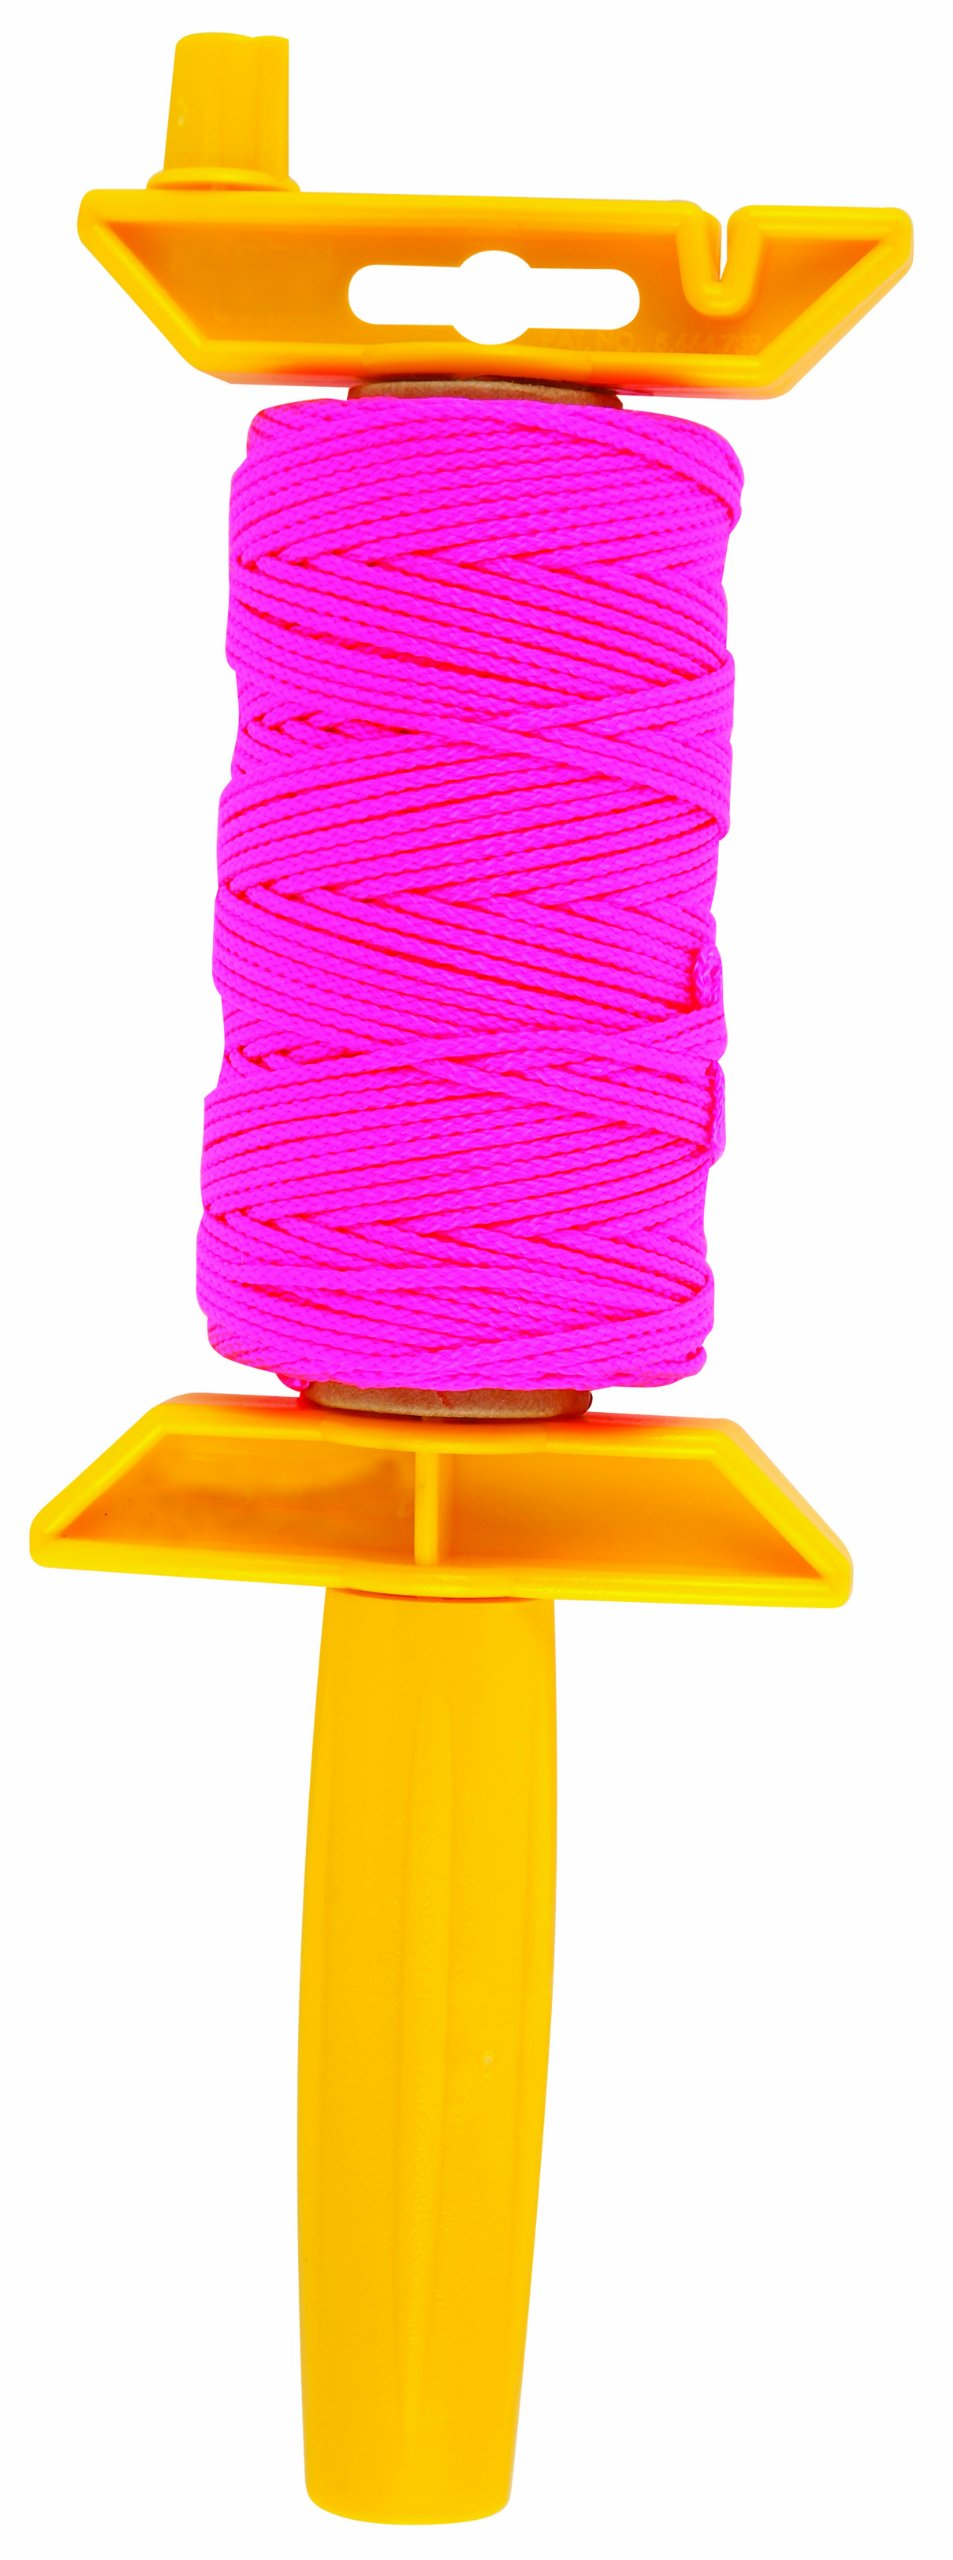 Task Tools T27112 250-Feet Braided Nylon Construction Line and Reel Holder, Pink